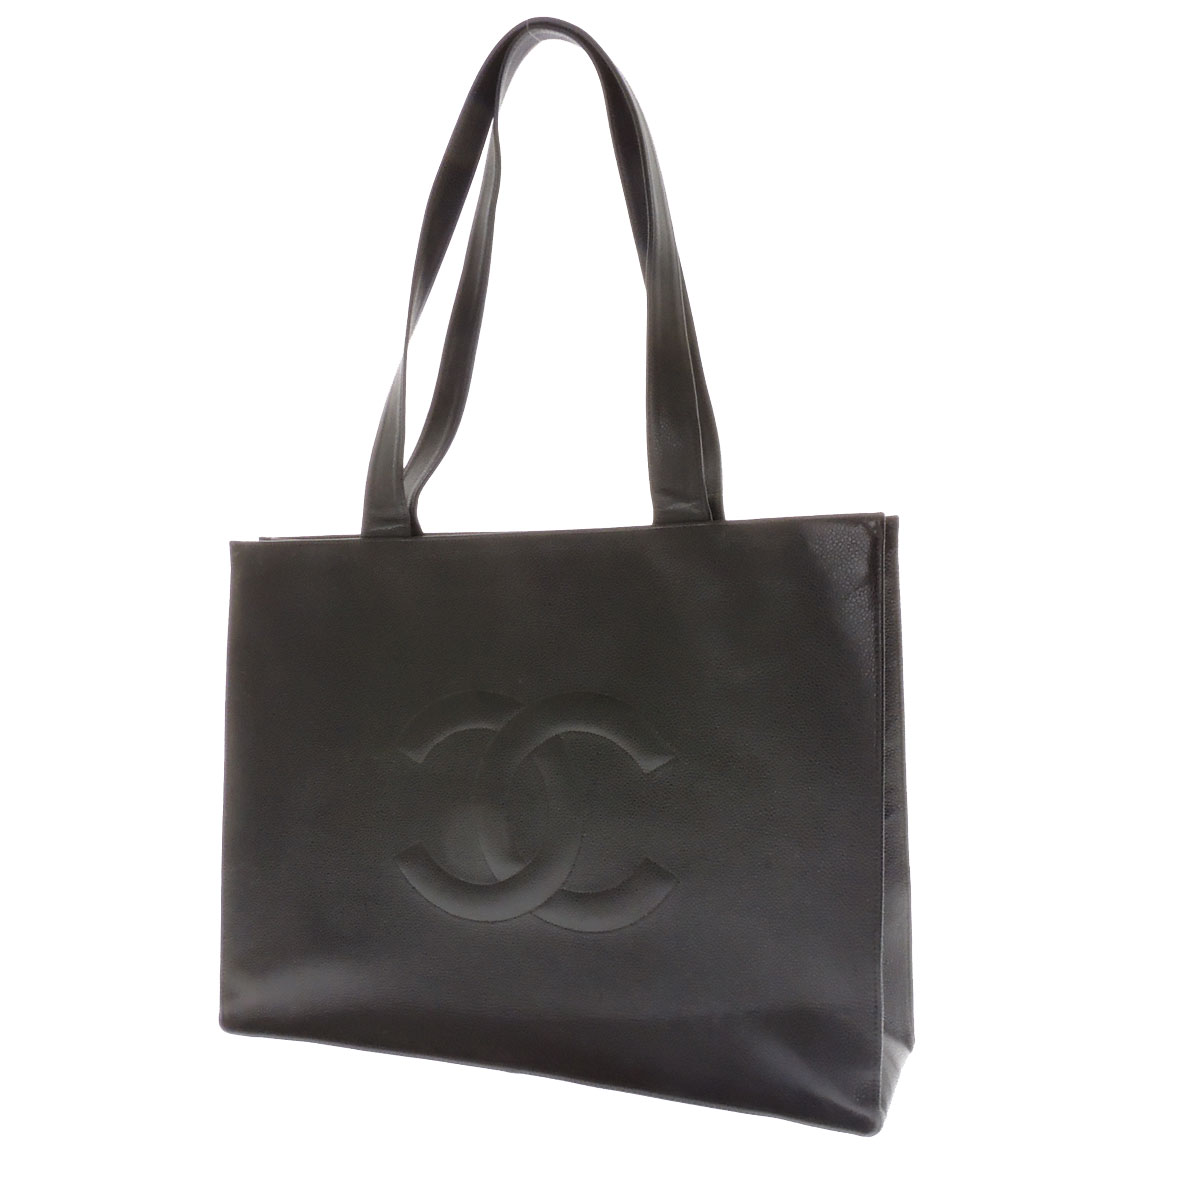 CHANEL here mark tote bag leather Lady's fs3gm